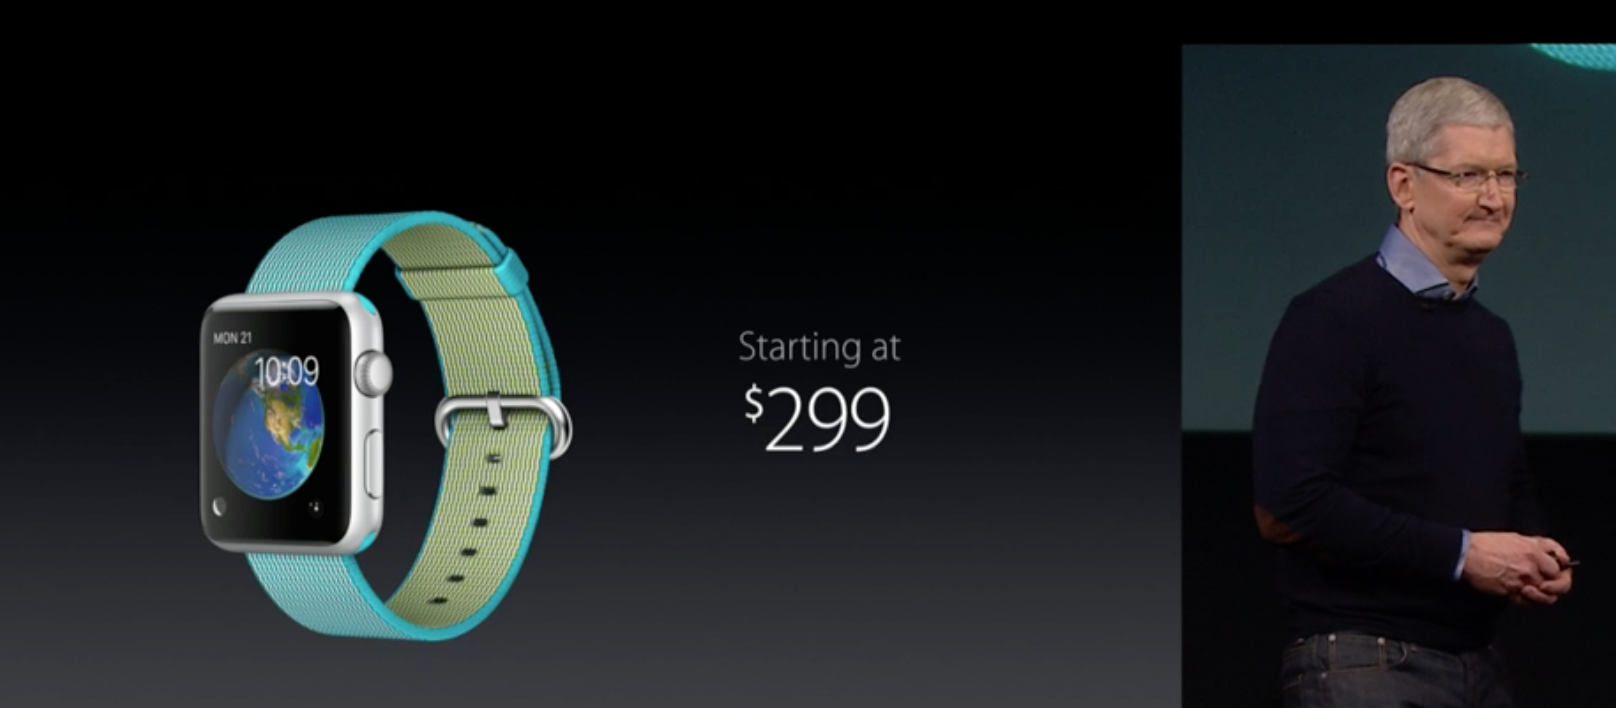 Apple has just announced a price drop for Apple Watch, now starting at just $299 for 38 mm. For that price, it appears to come equipped with the new nylon bands. It's unclear how other models…